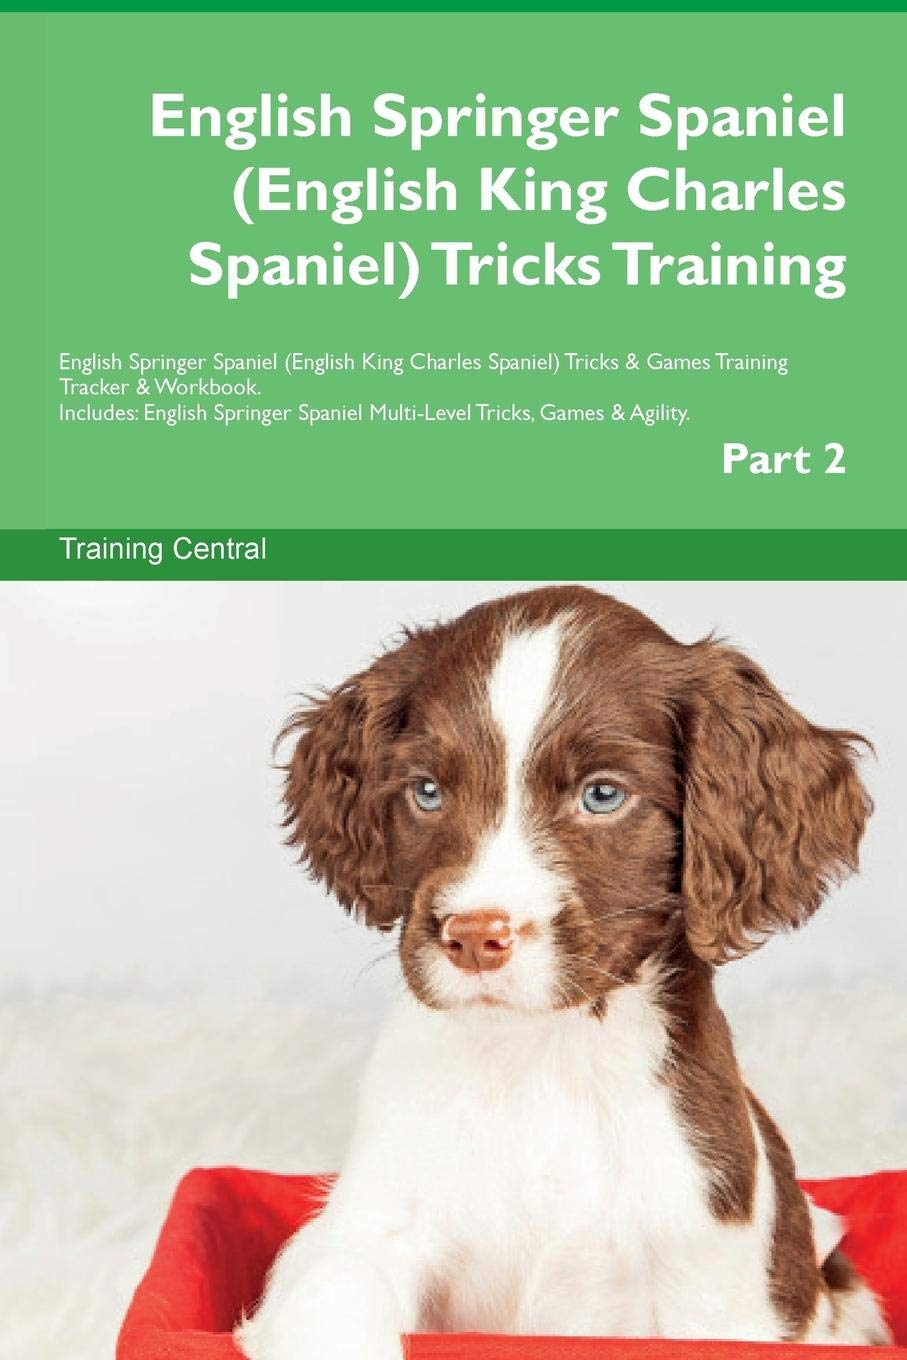 Read Online English Springer Spaniel (English King Charles Spaniel) Tricks Training English Springer Spaniel (English King Charles Spaniel) Tricks & Games ... Multi-Level Tricks, Games & Agility. Part 2 PDF